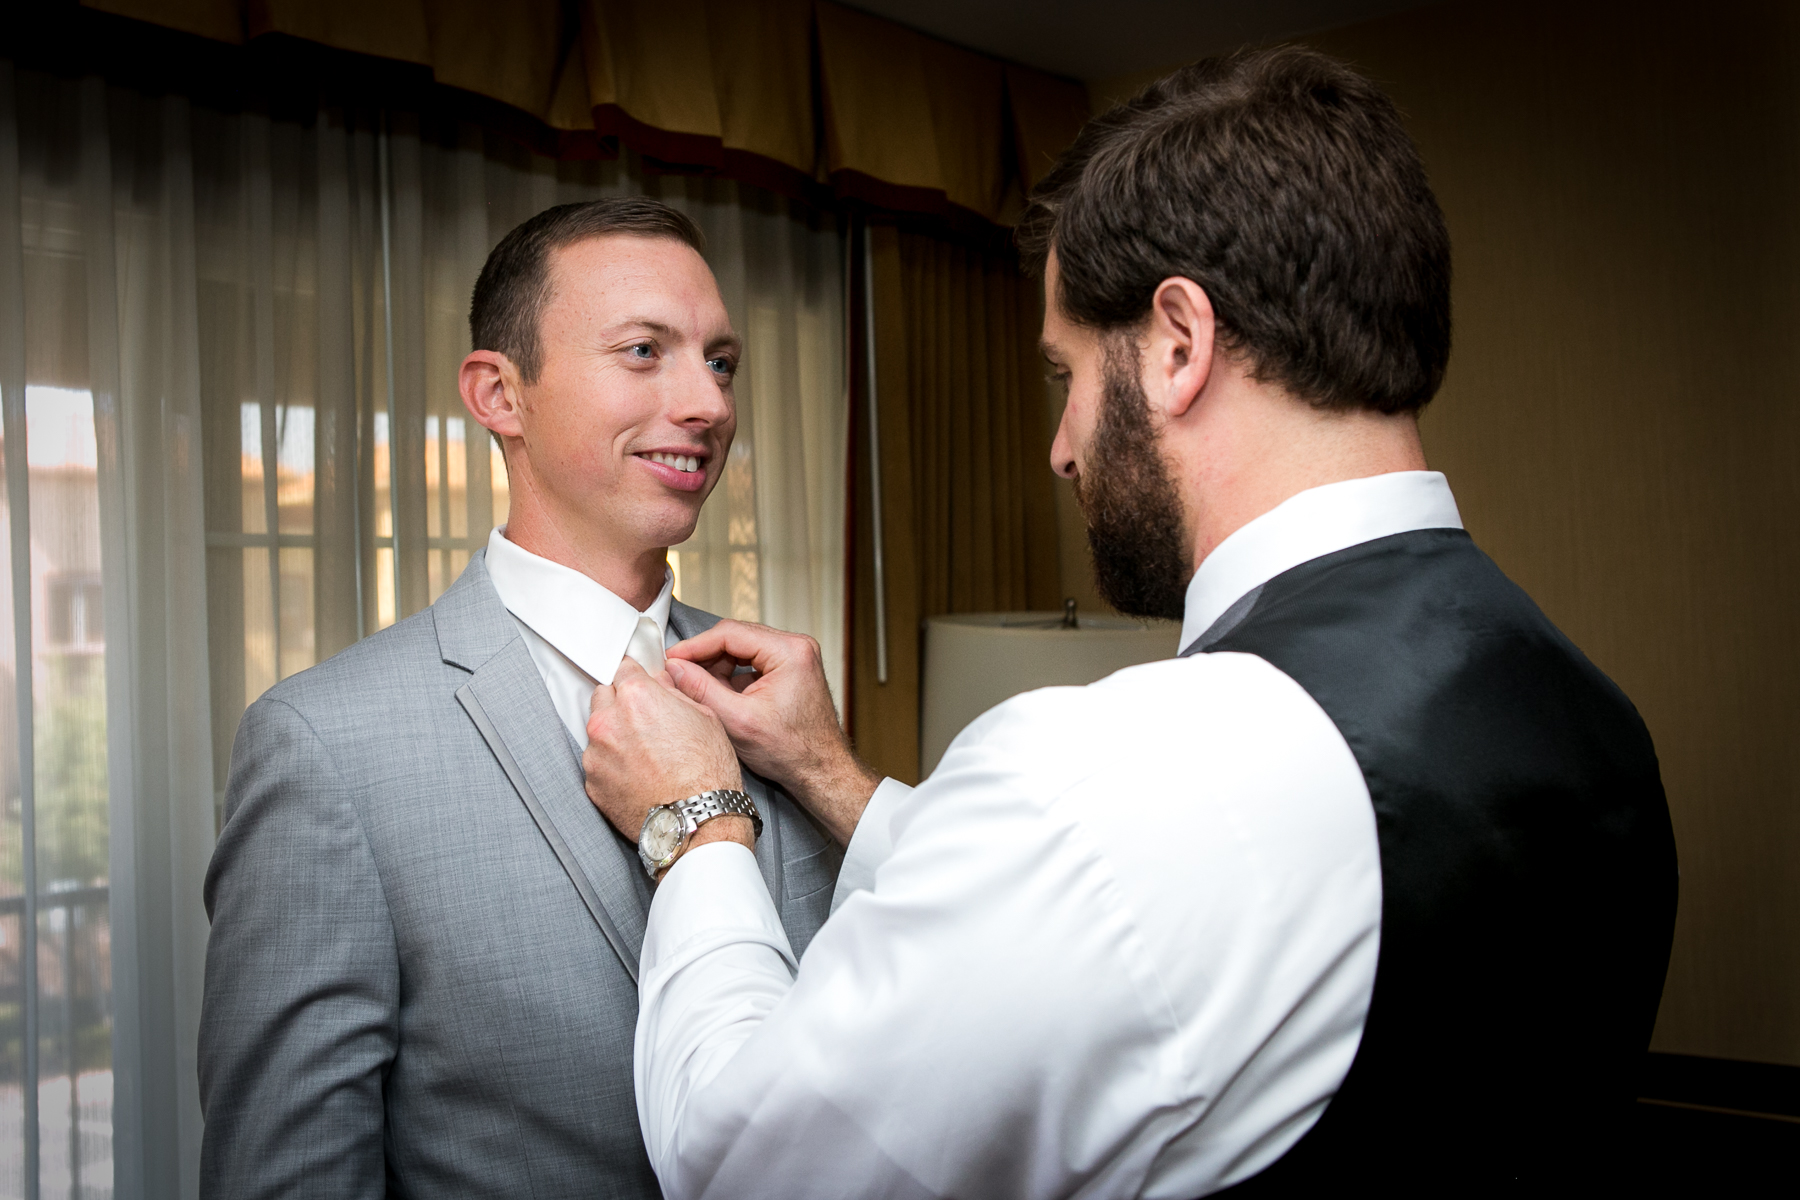 best man adjust groom's tie during getting ready at wedding at ayres hotel in corona